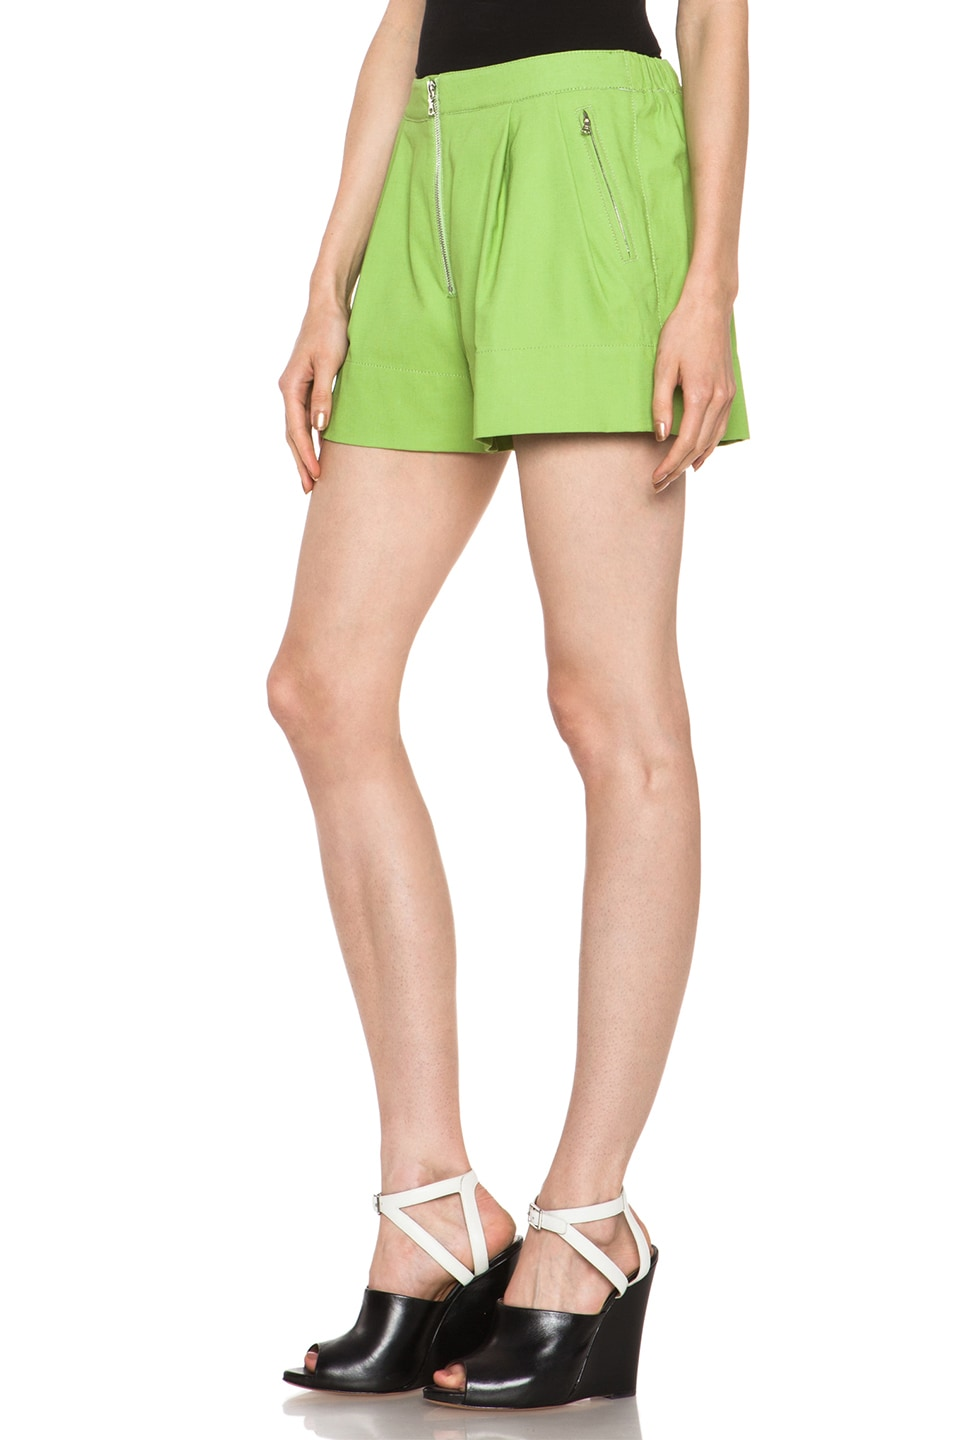 Image 2 of 3.1 phillip lim Bloomer Linen-Blend Short in Avocado Sld